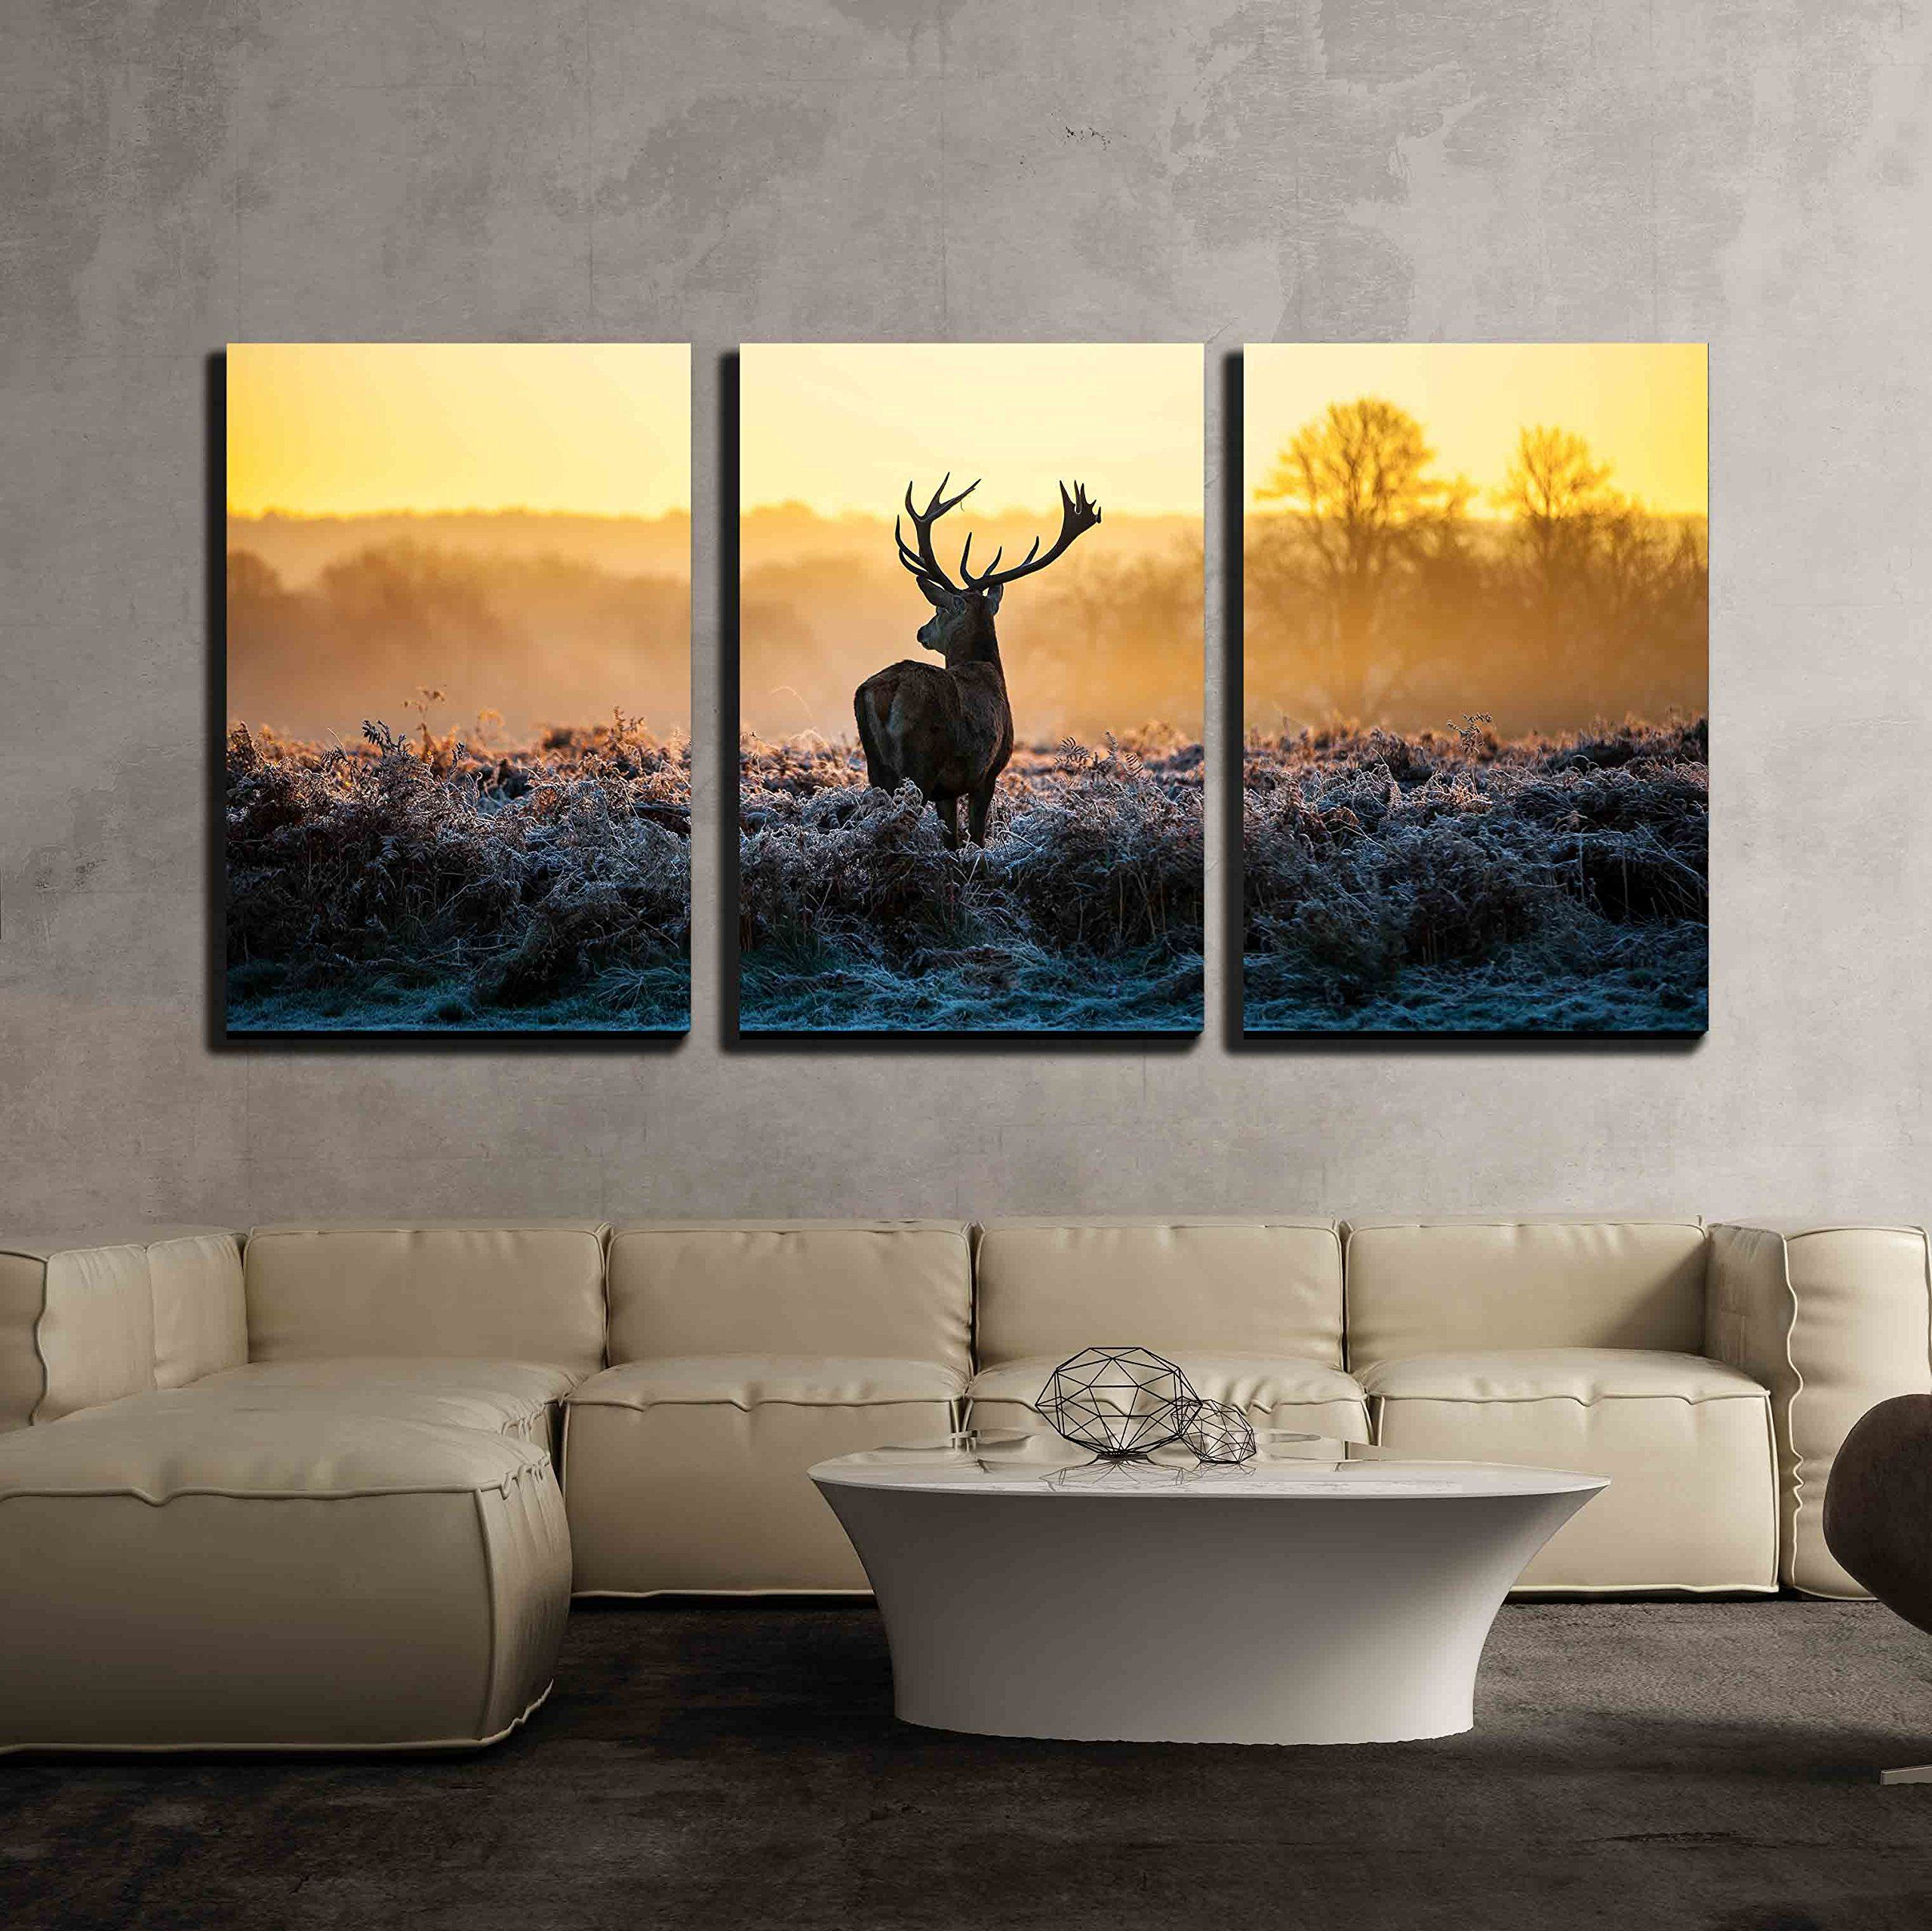 Wall26 3 Piece Canvas Wall Art Red Deer In Morning Sun Modern Home Art Stretched And Framed Ready To Hang 16 X24 X3 Panels Lavorist Canvas Wall Art